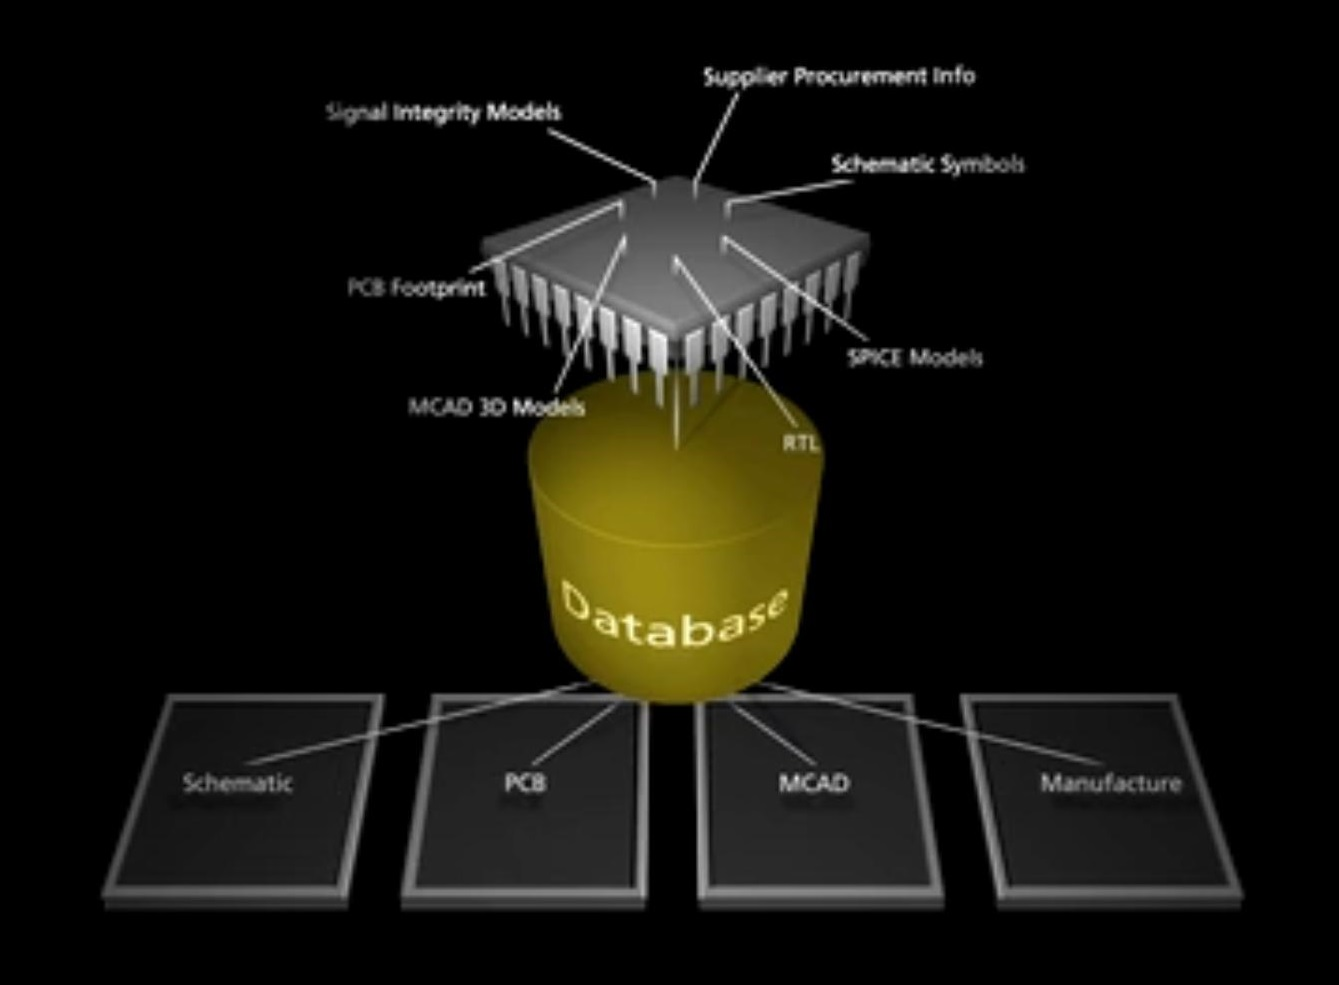 Screenshot from Altium website of unified data model